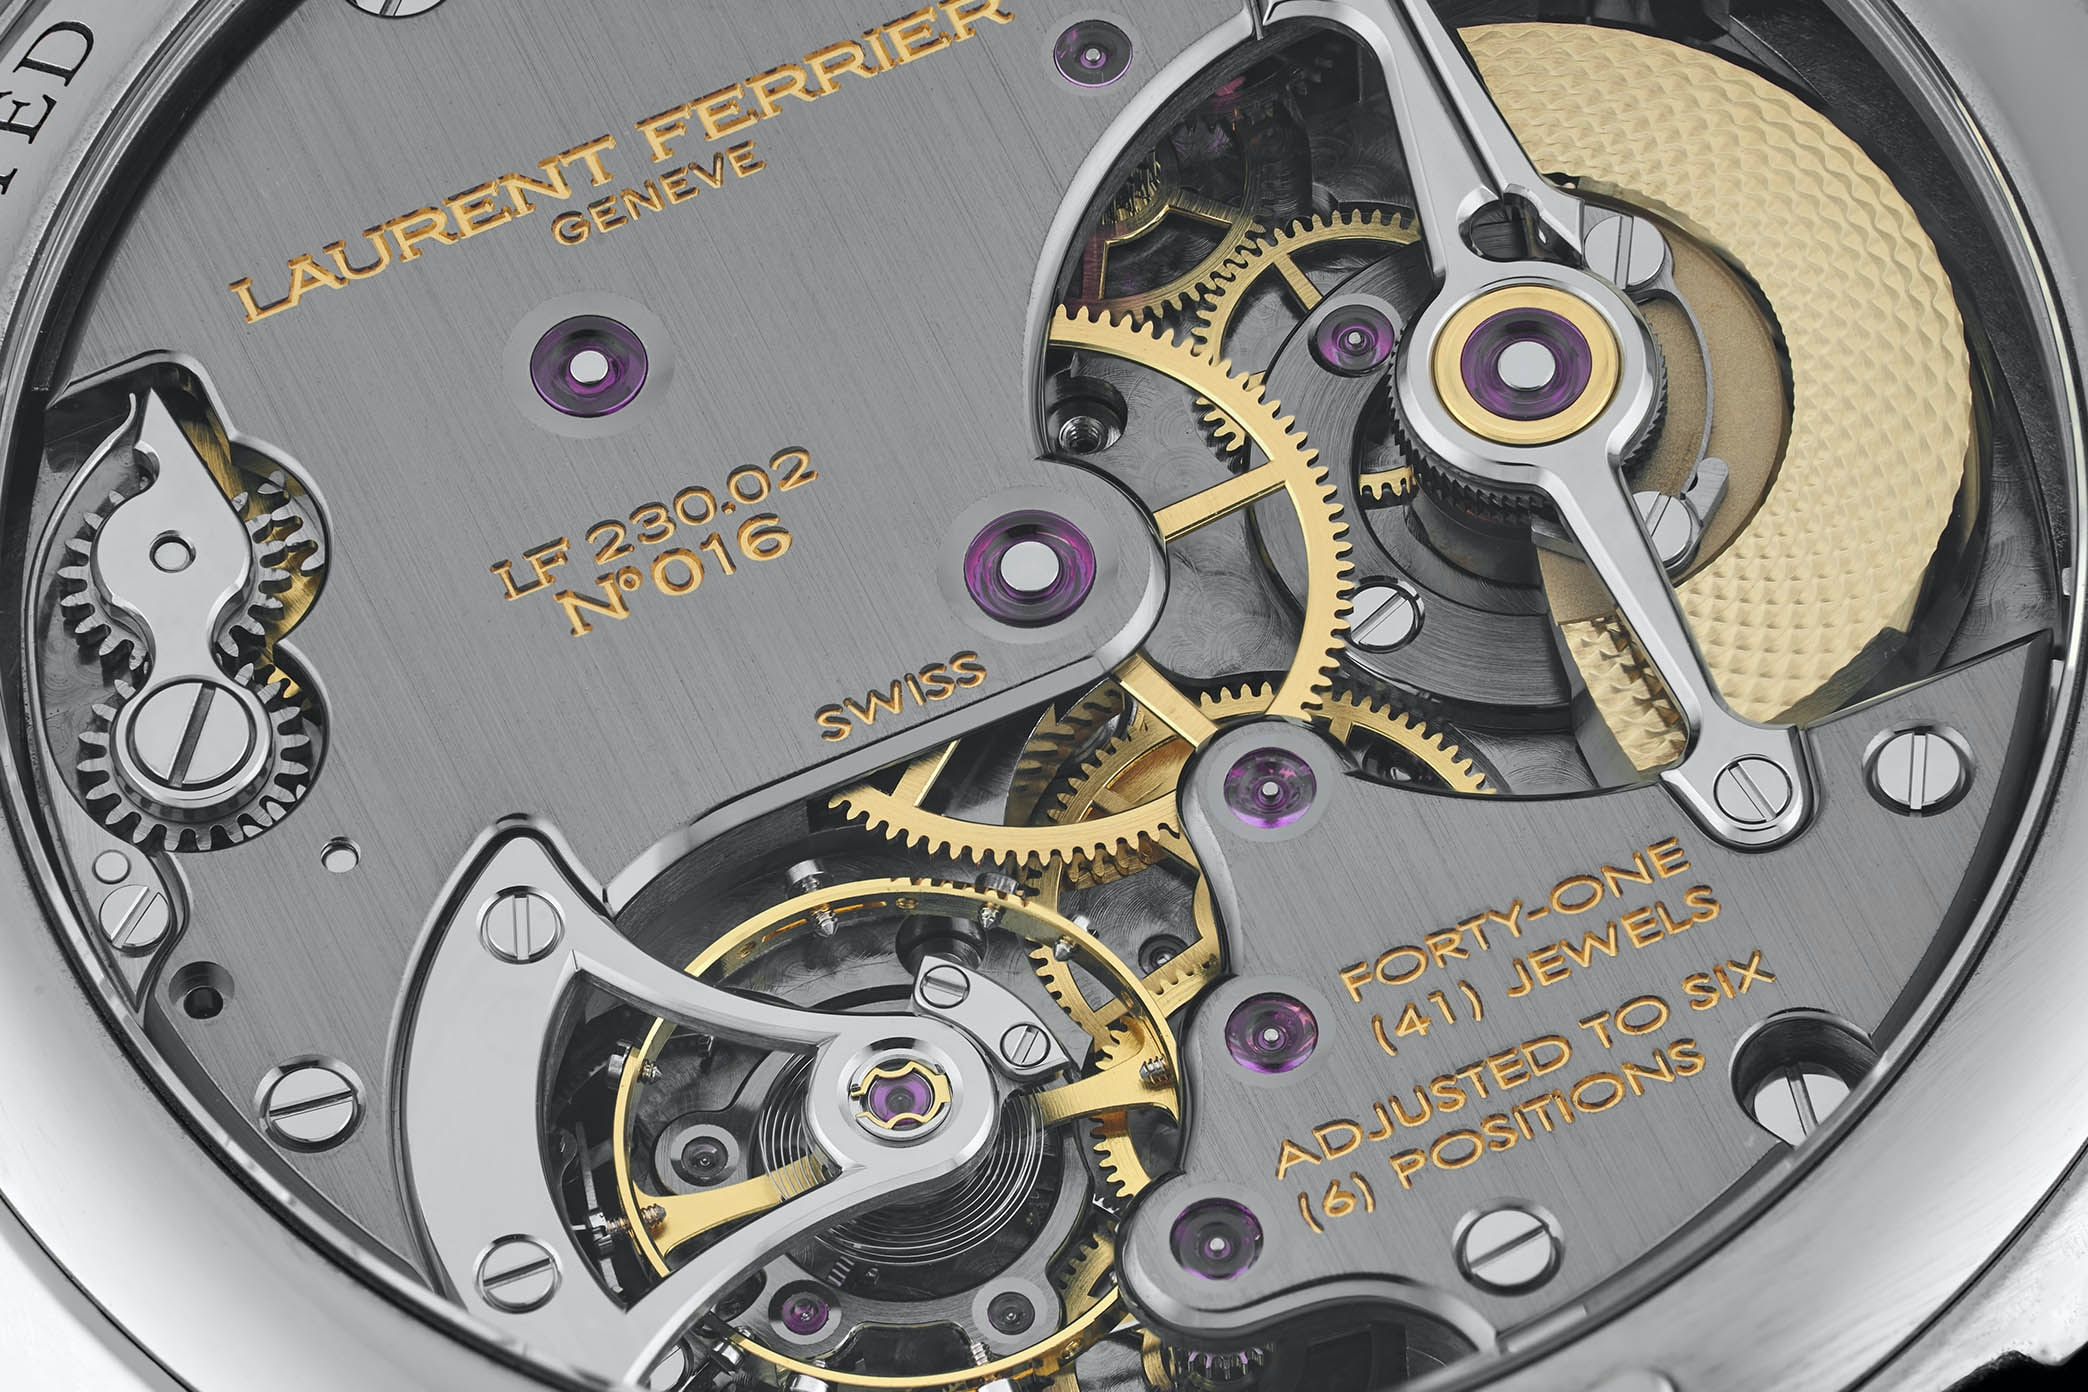 Le laurentferrier movementdetail2.jpg?ixlib=rails 1.1  In The Shop: Introducing The Laurent Ferrier Traveller Limited Edition For HODINKEE LE LaurentFerrier MovementDetail2